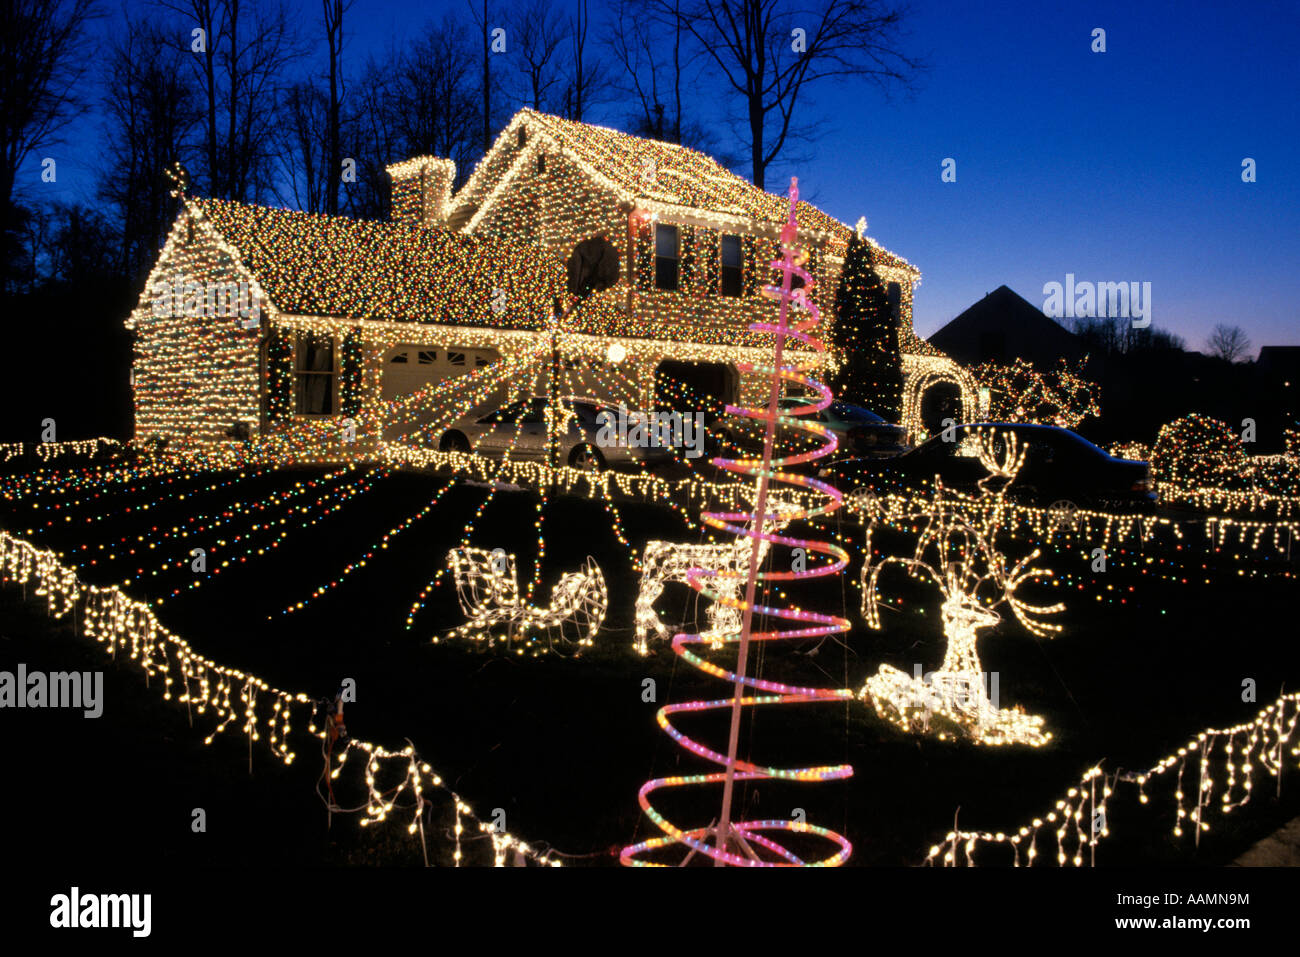 ENTIRE HOUSE AND YARD DECORATED WITH CHRISTMAS LIGHTS   Stock Image